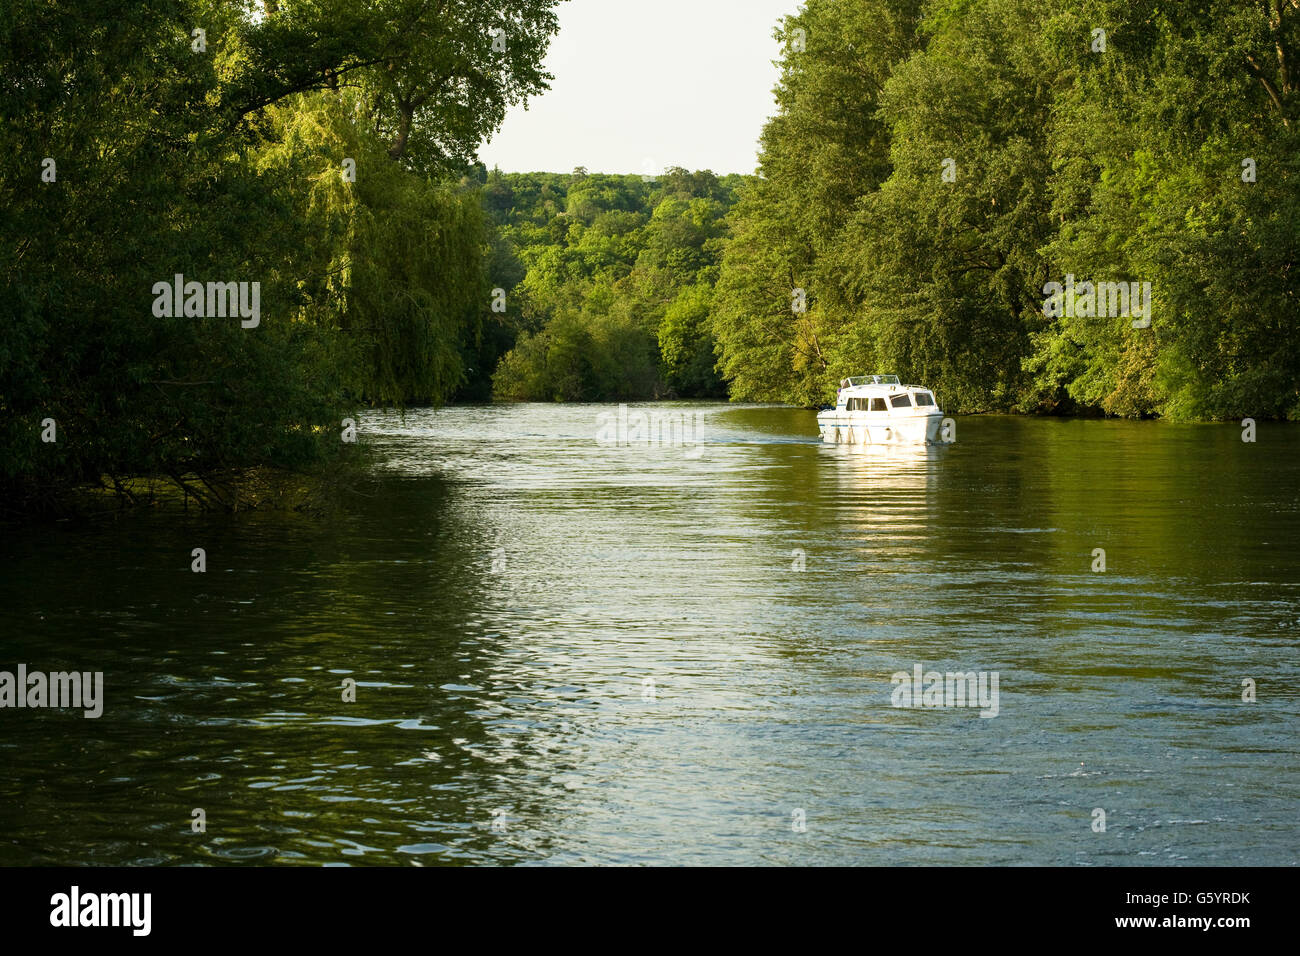 boating on the river Thames, Oxfordshire - Stock Image